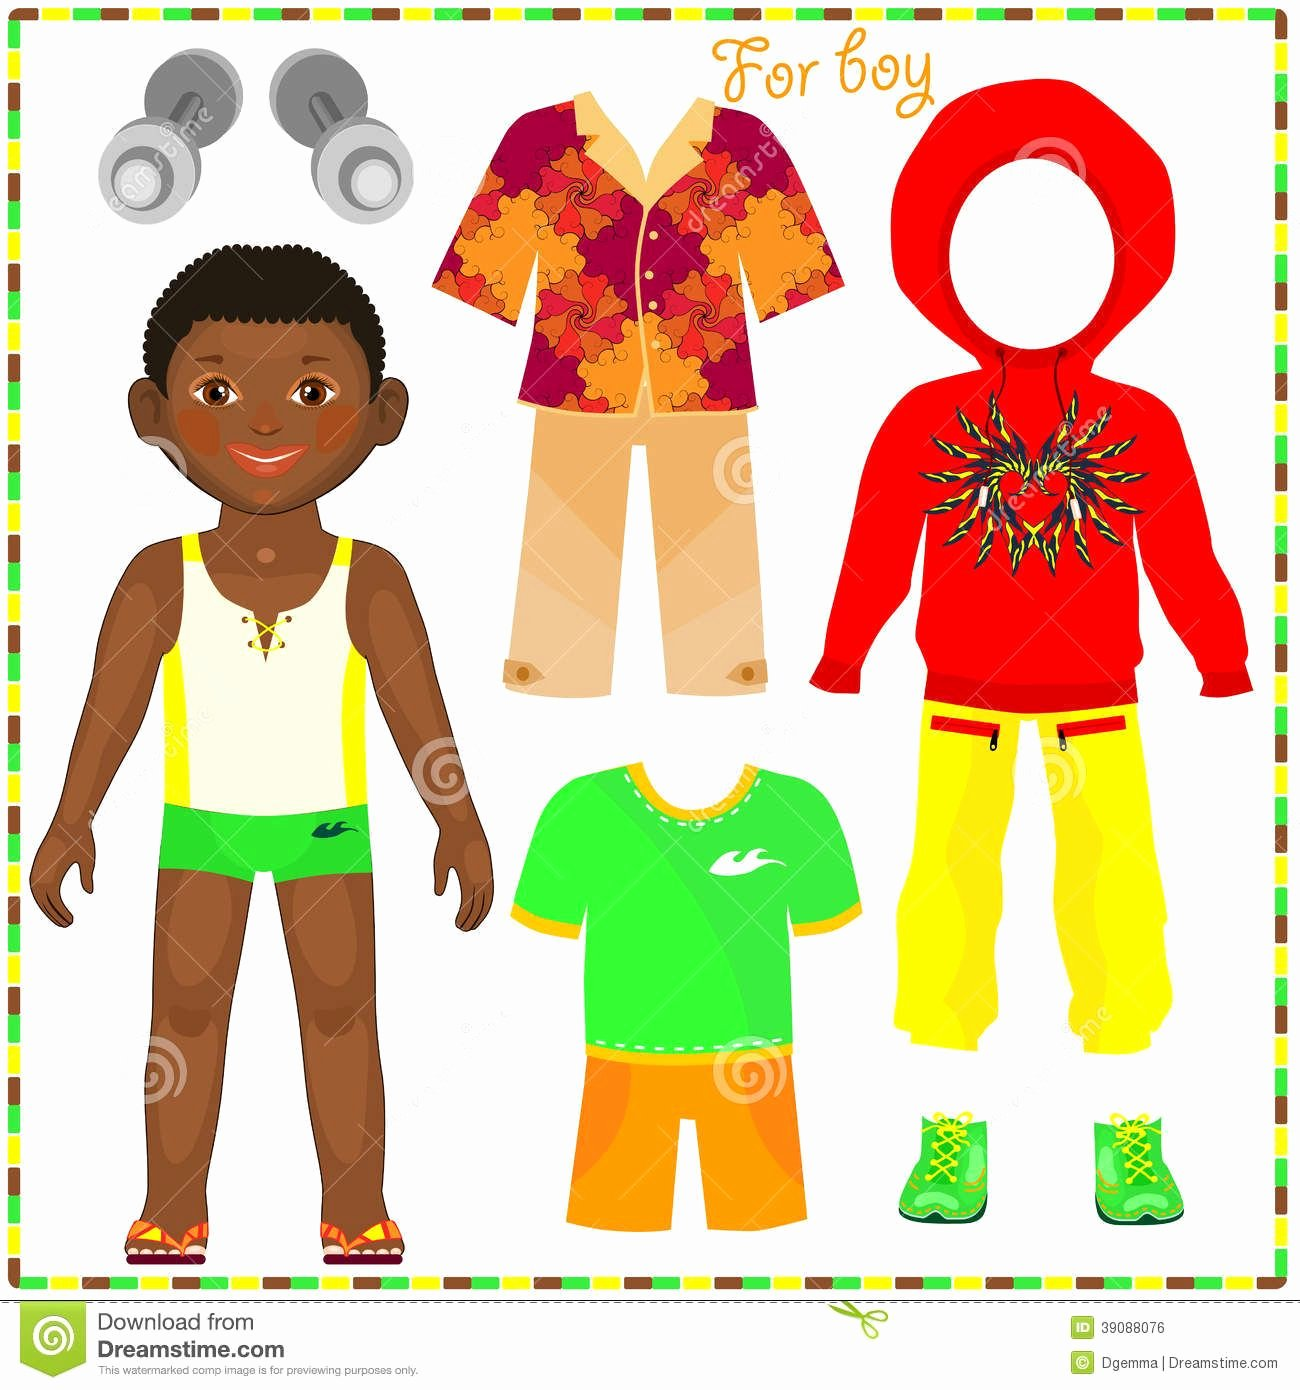 Boy and Girl Template Awesome Boy Paper Doll Template Black African American